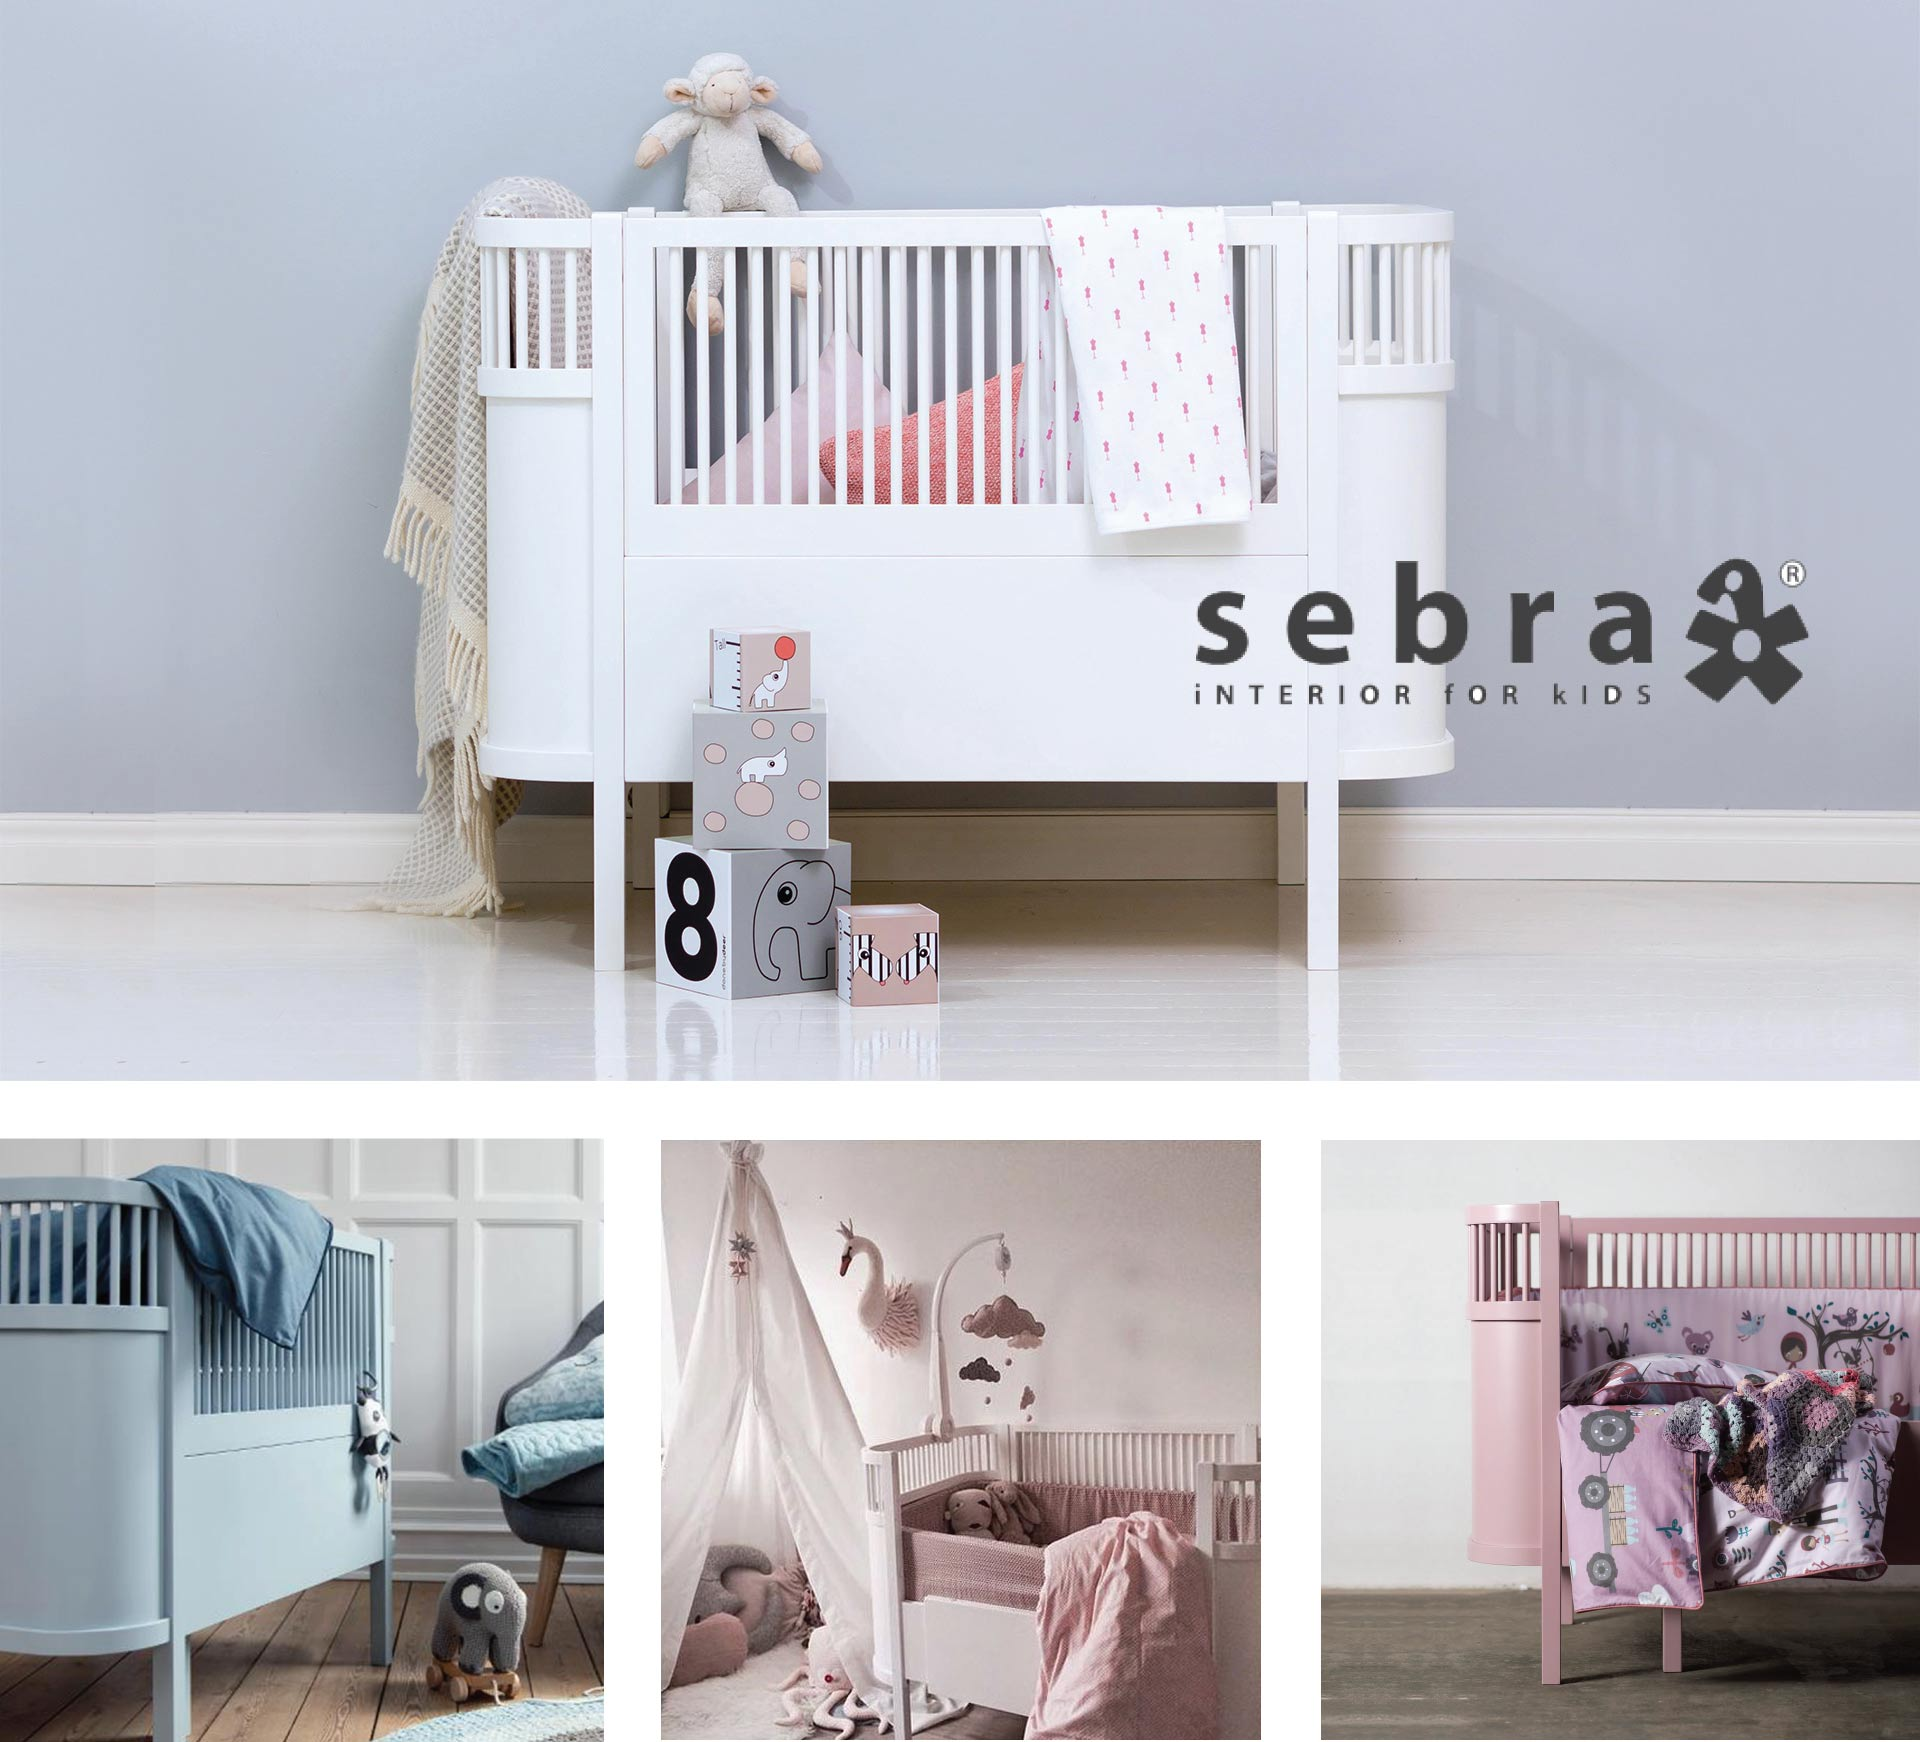 They produce beautiful items just for babies and children sebra combine modern design with classic crafts such as crocheting and knitting